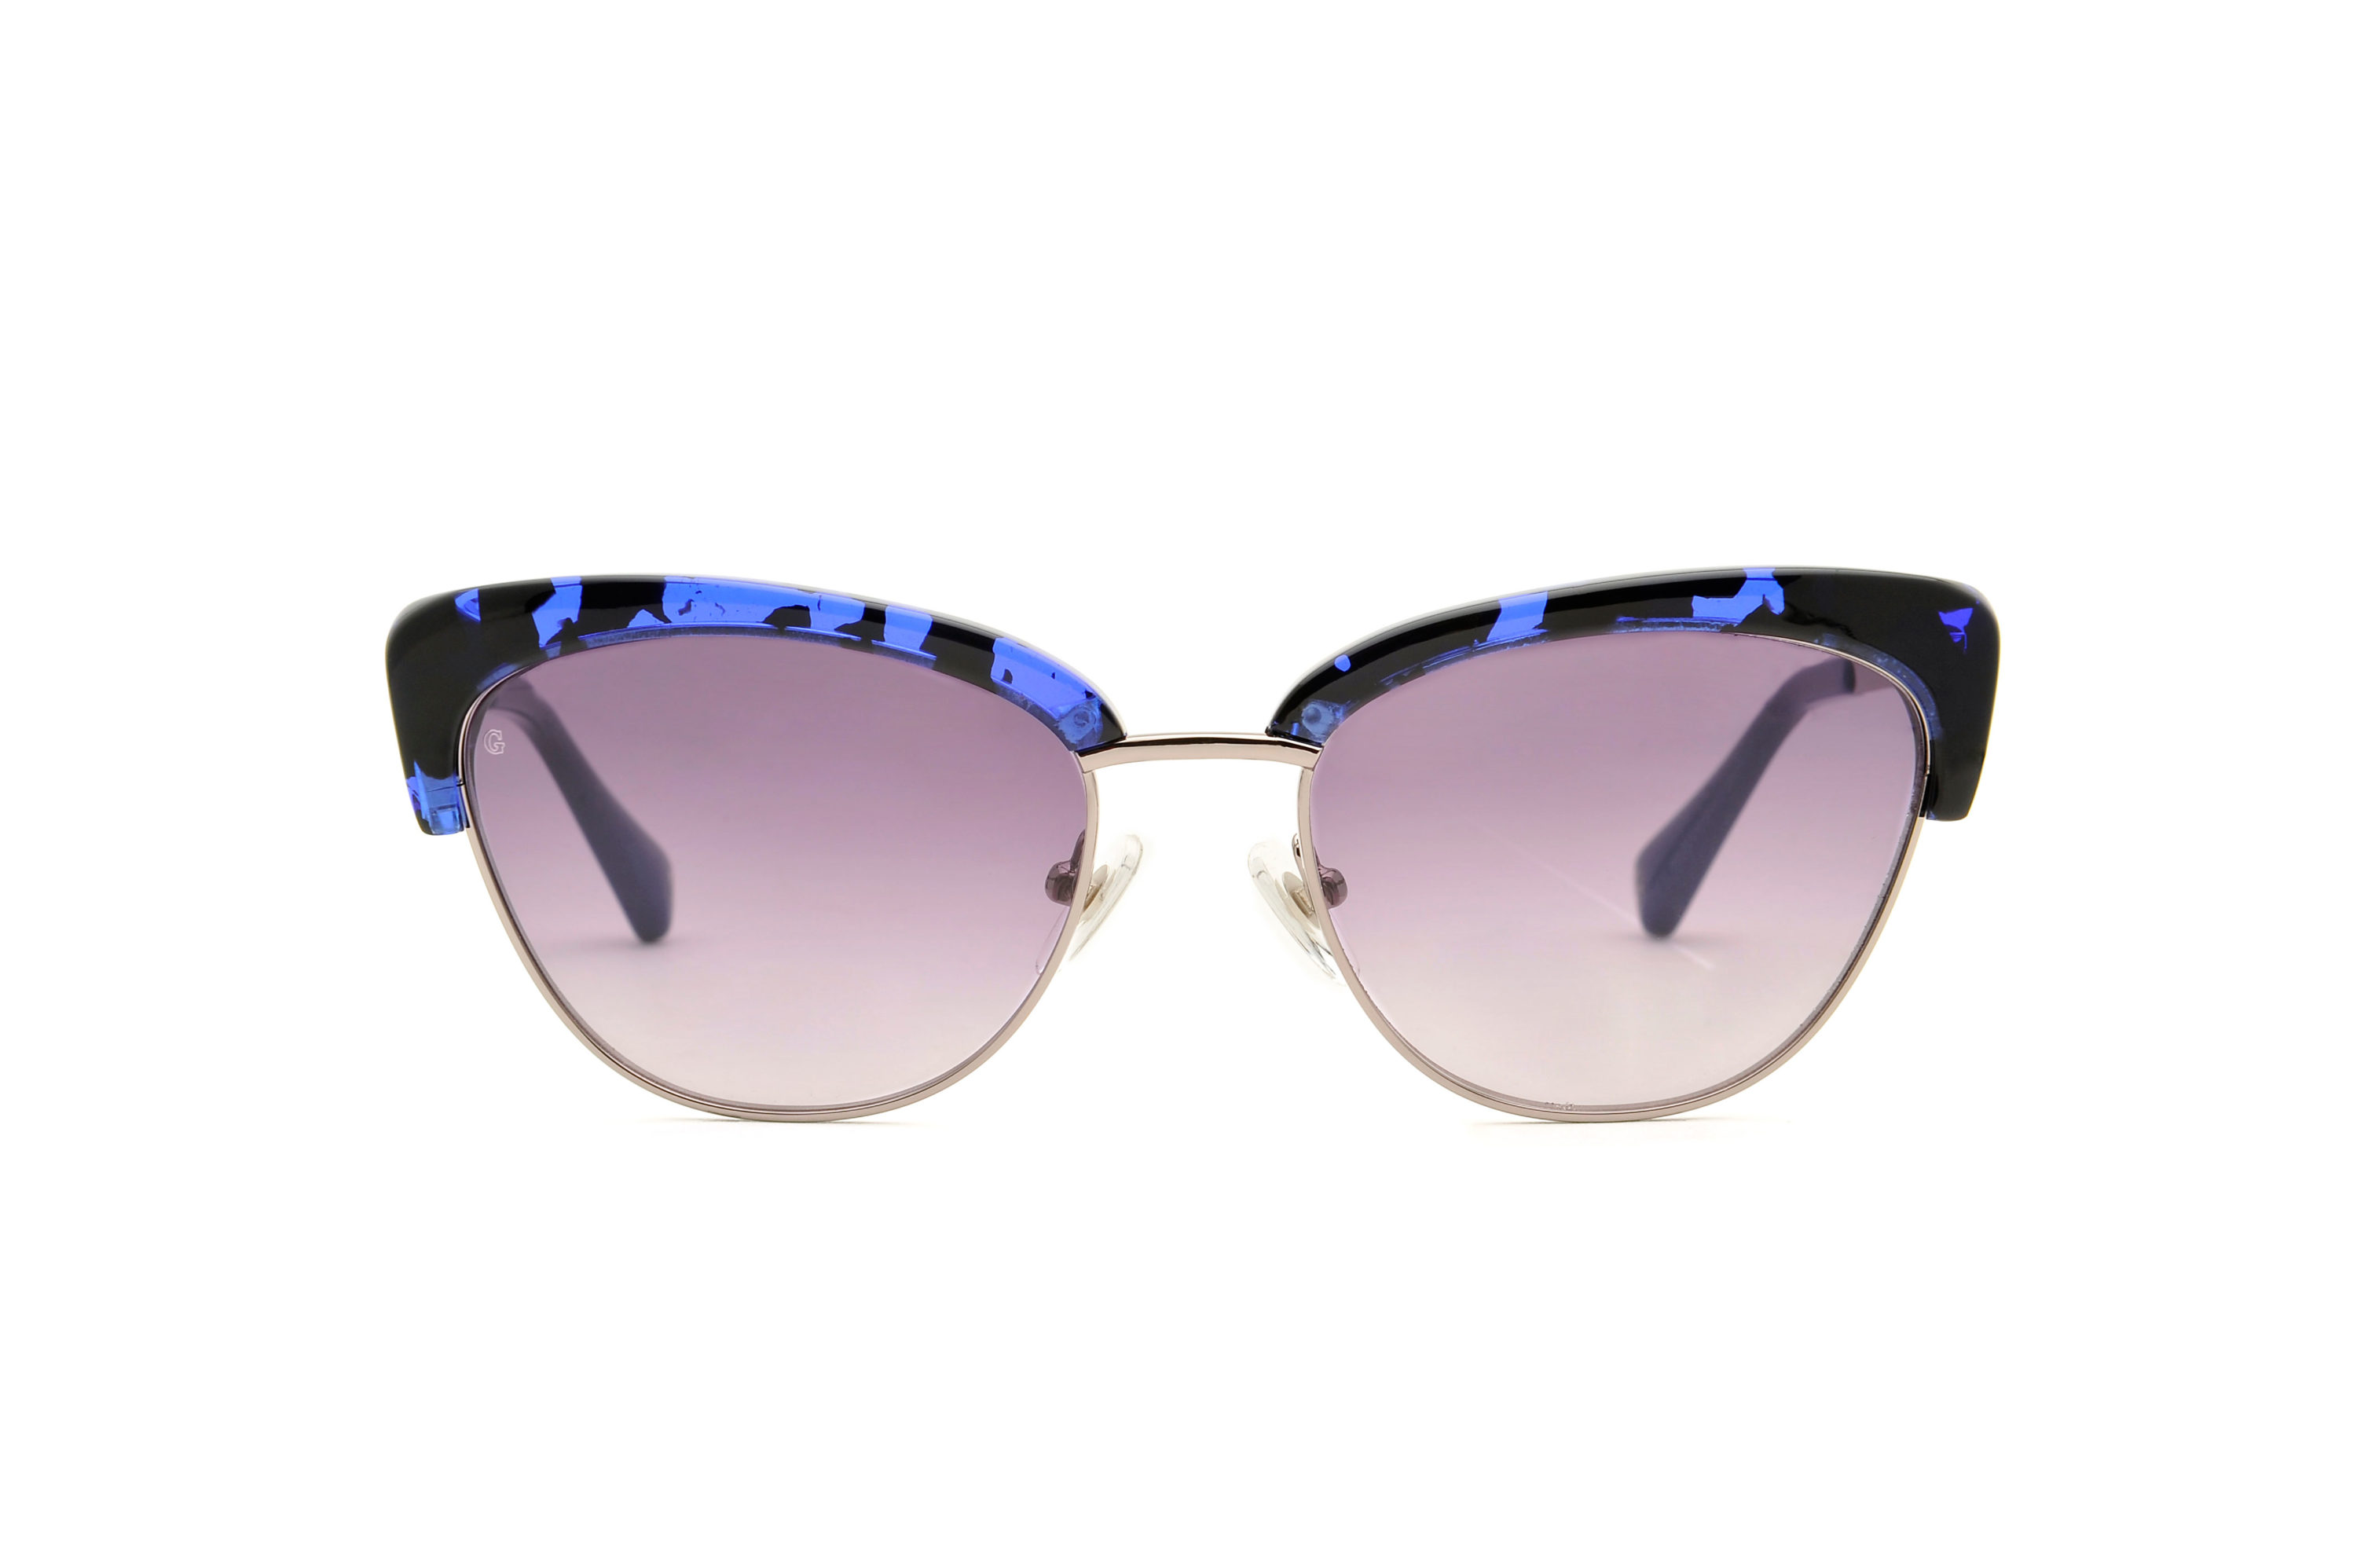 Grace acetate/metal cat eye blue sunglasses by GIGI Studios